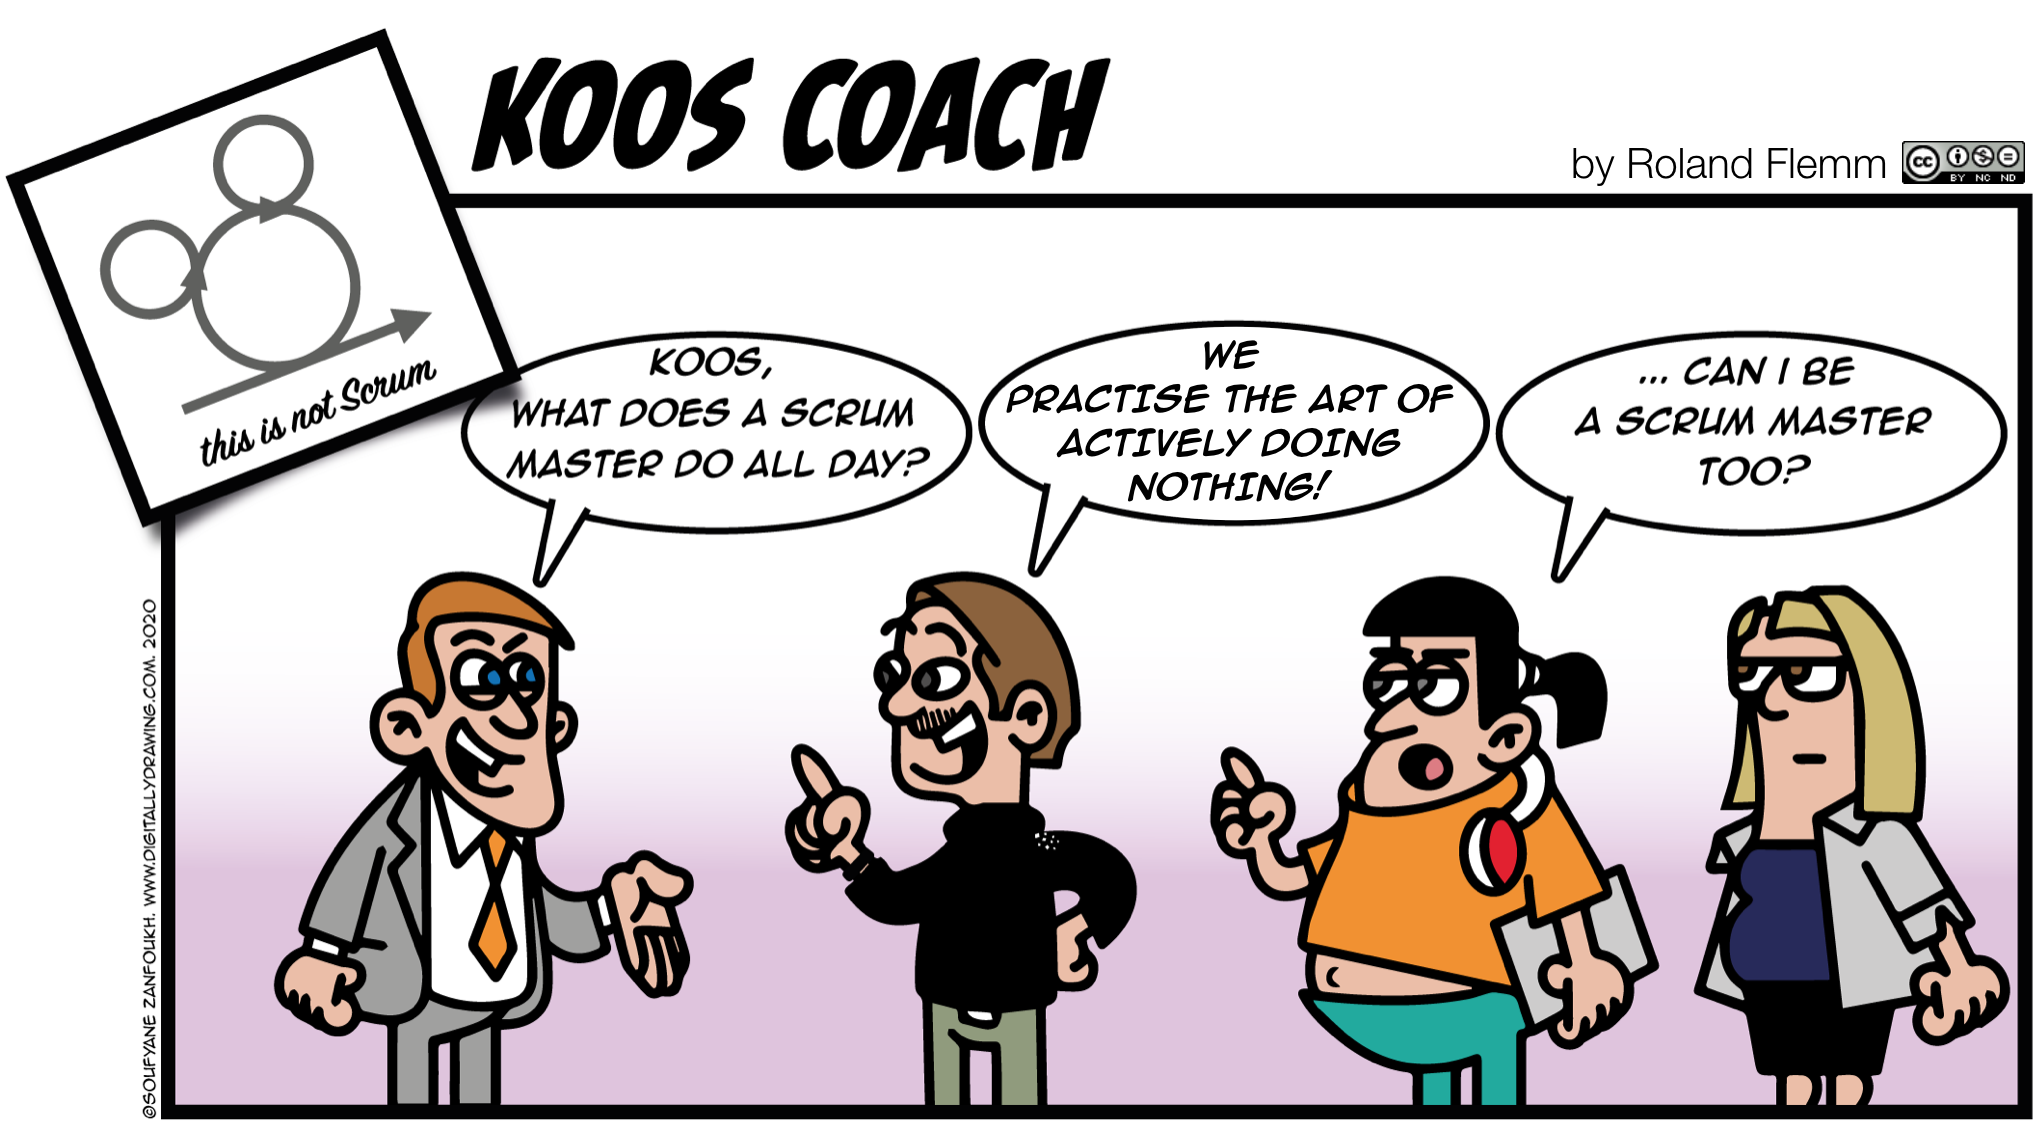 koos coach actively doing nothing